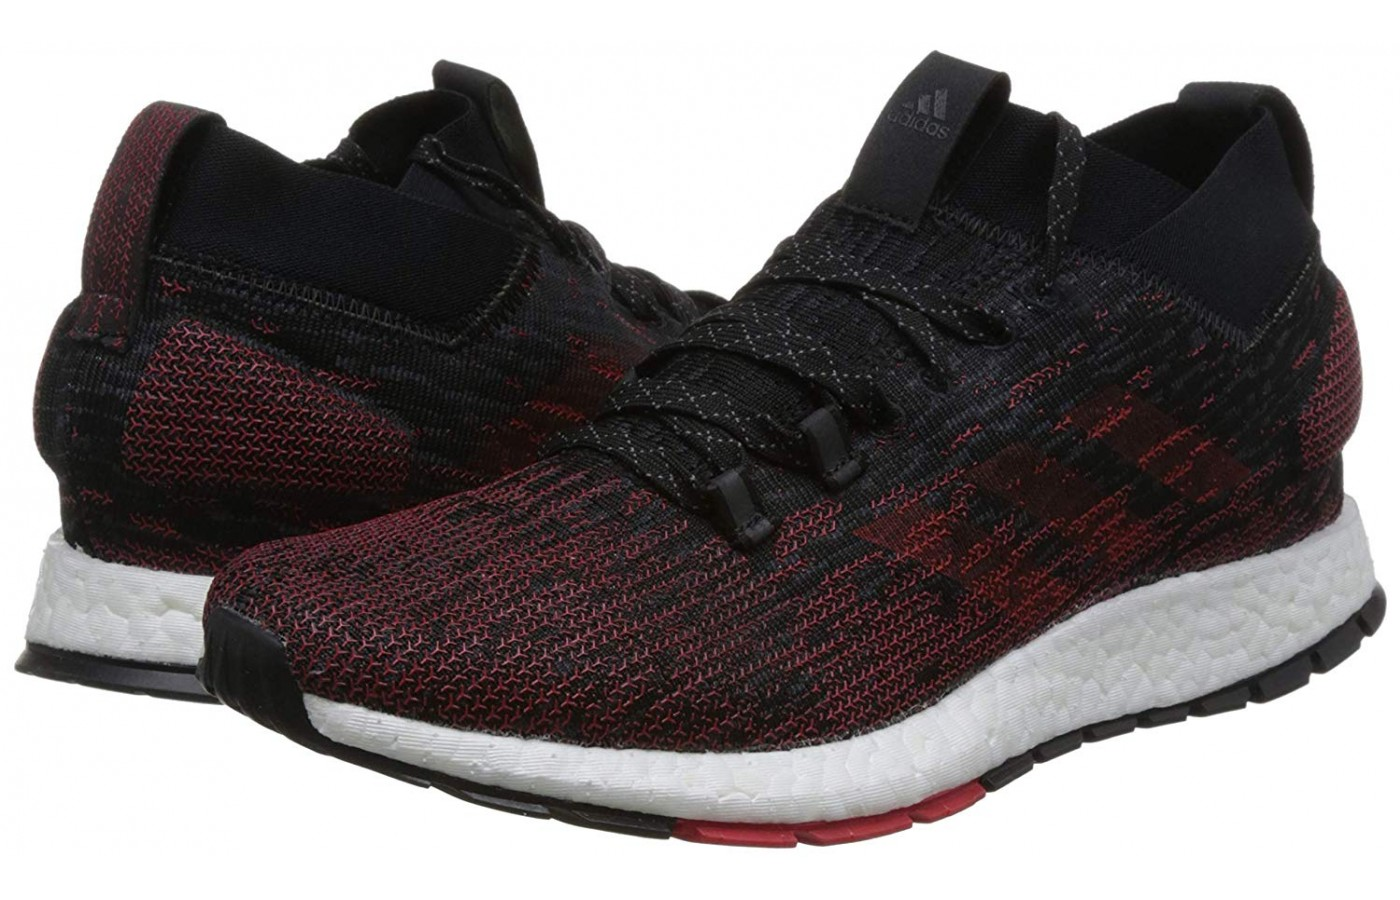 info for 86c7c 1fdbd Adidas Pureboost RBL angled perspective ...